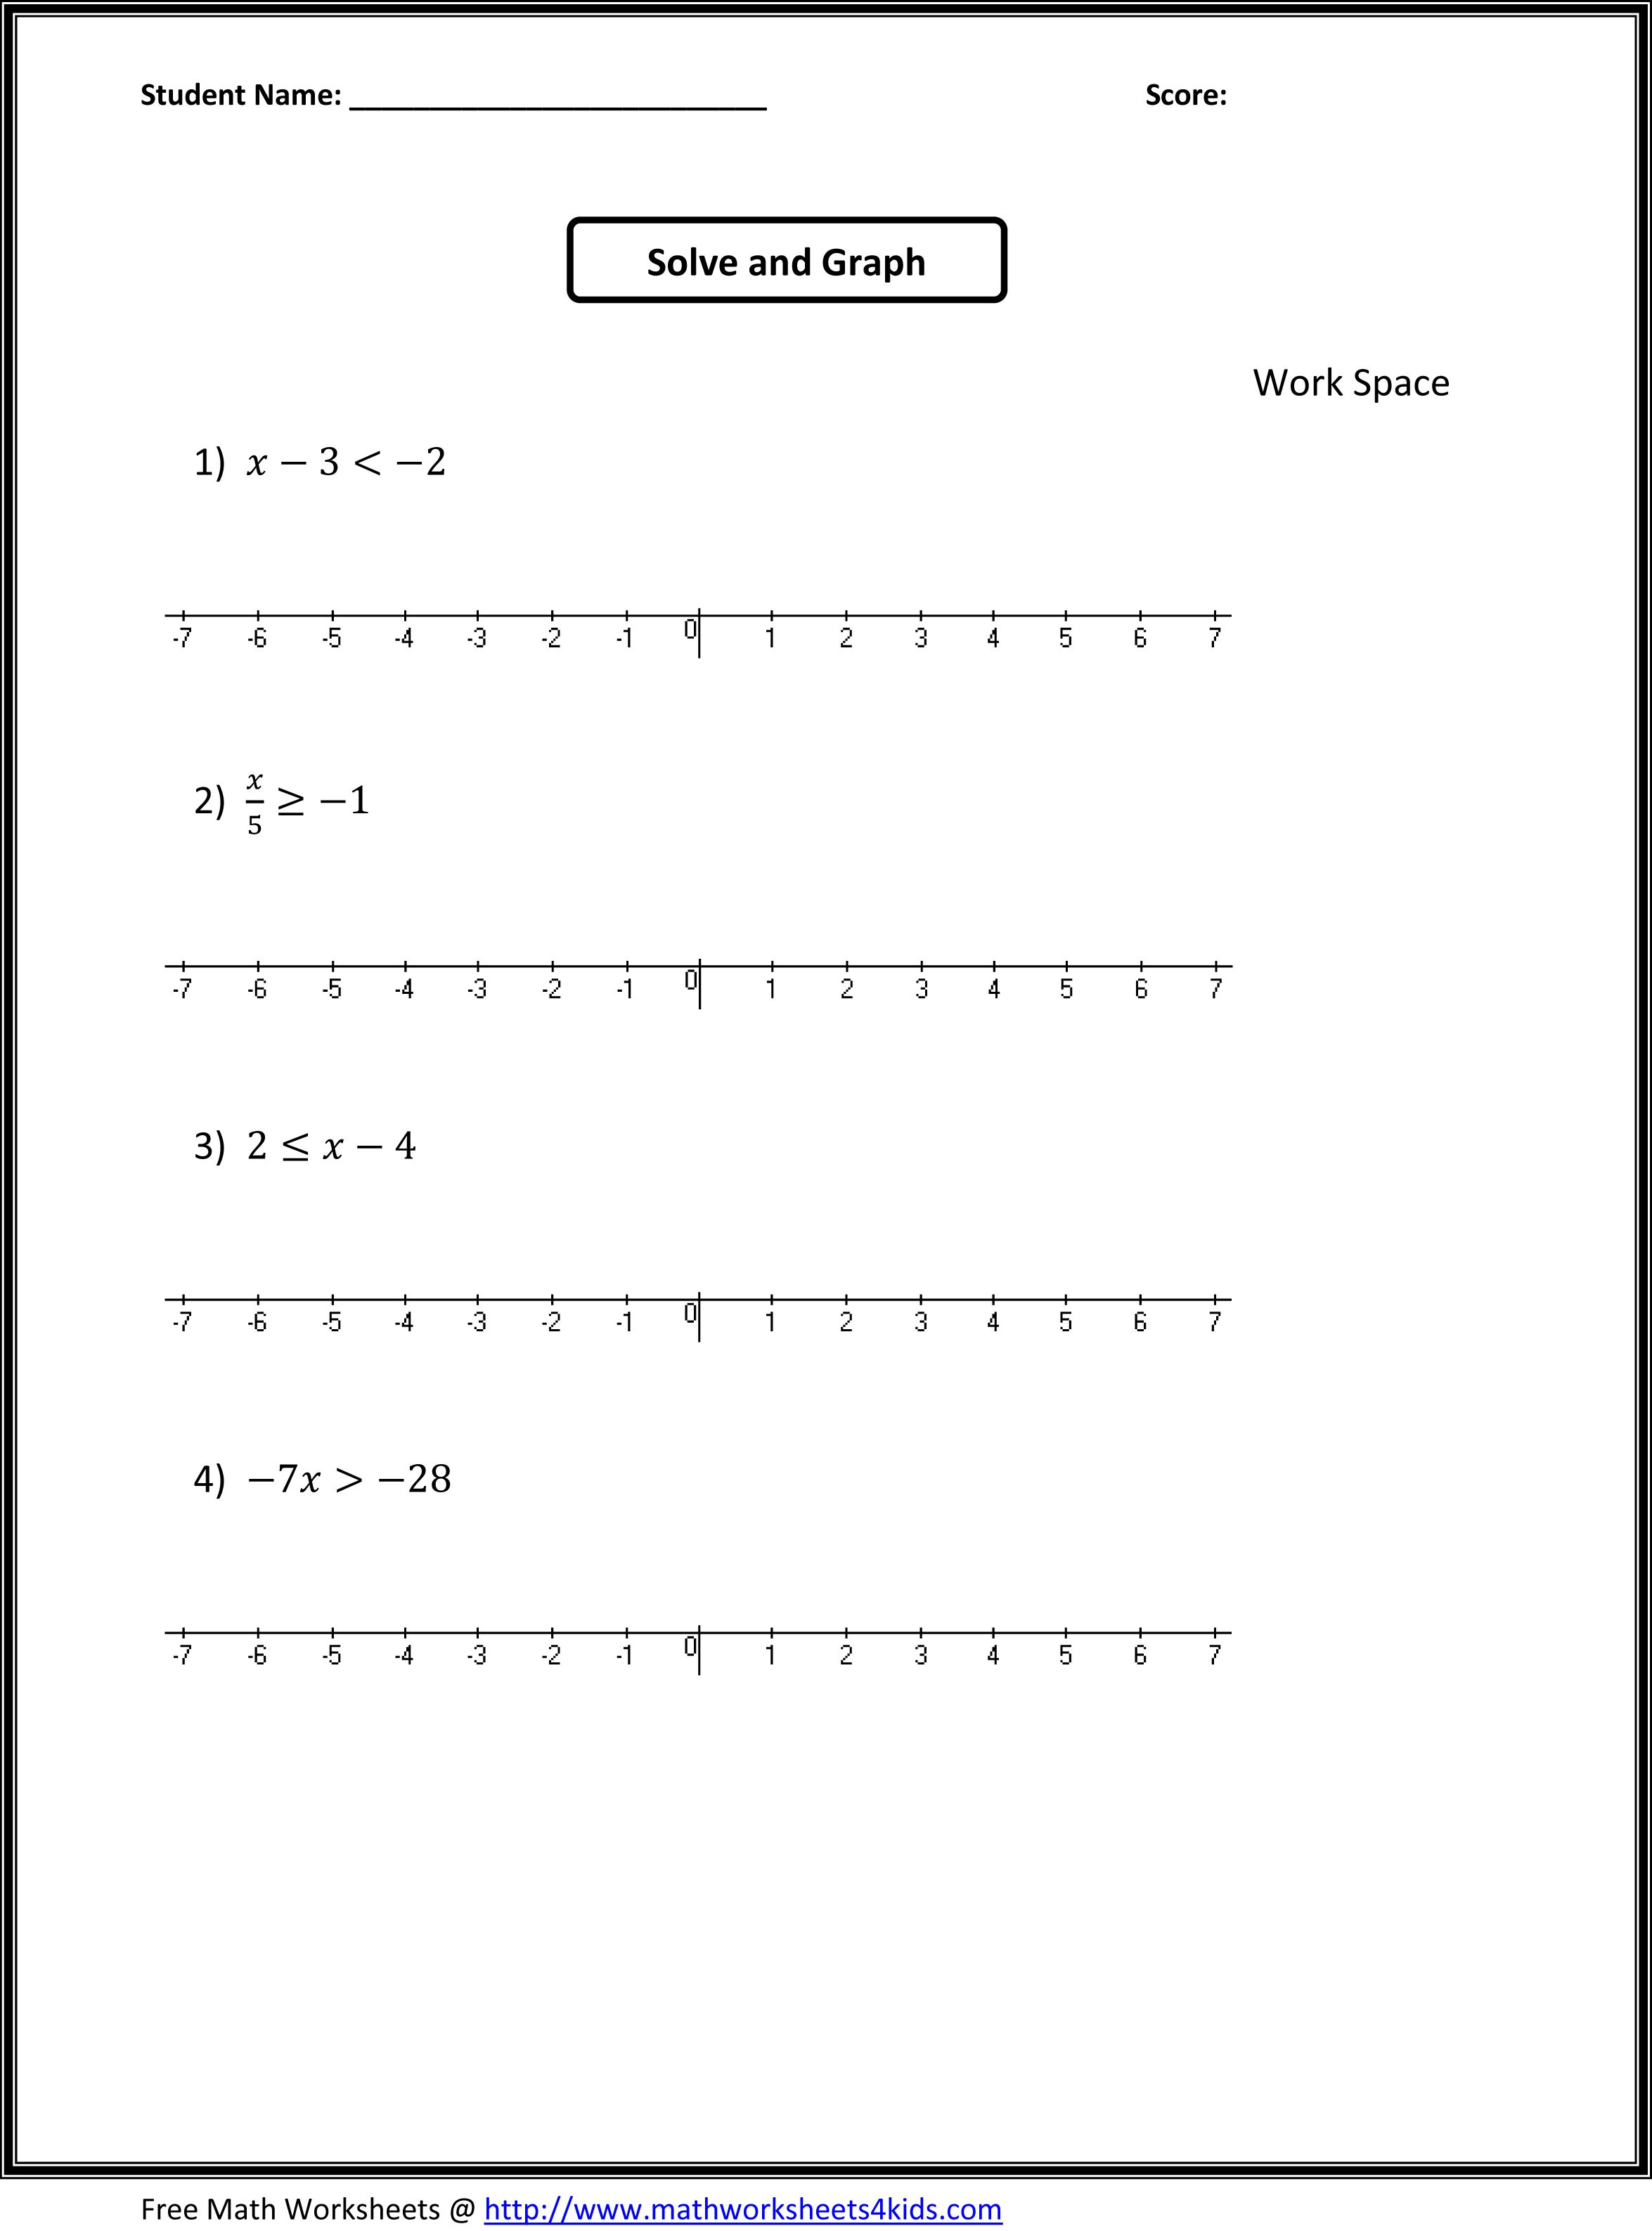 worksheet Solving And Graphing Inequalities Worksheet Pdf 7th grade algebra worksheets math places solve and graph the inequalities